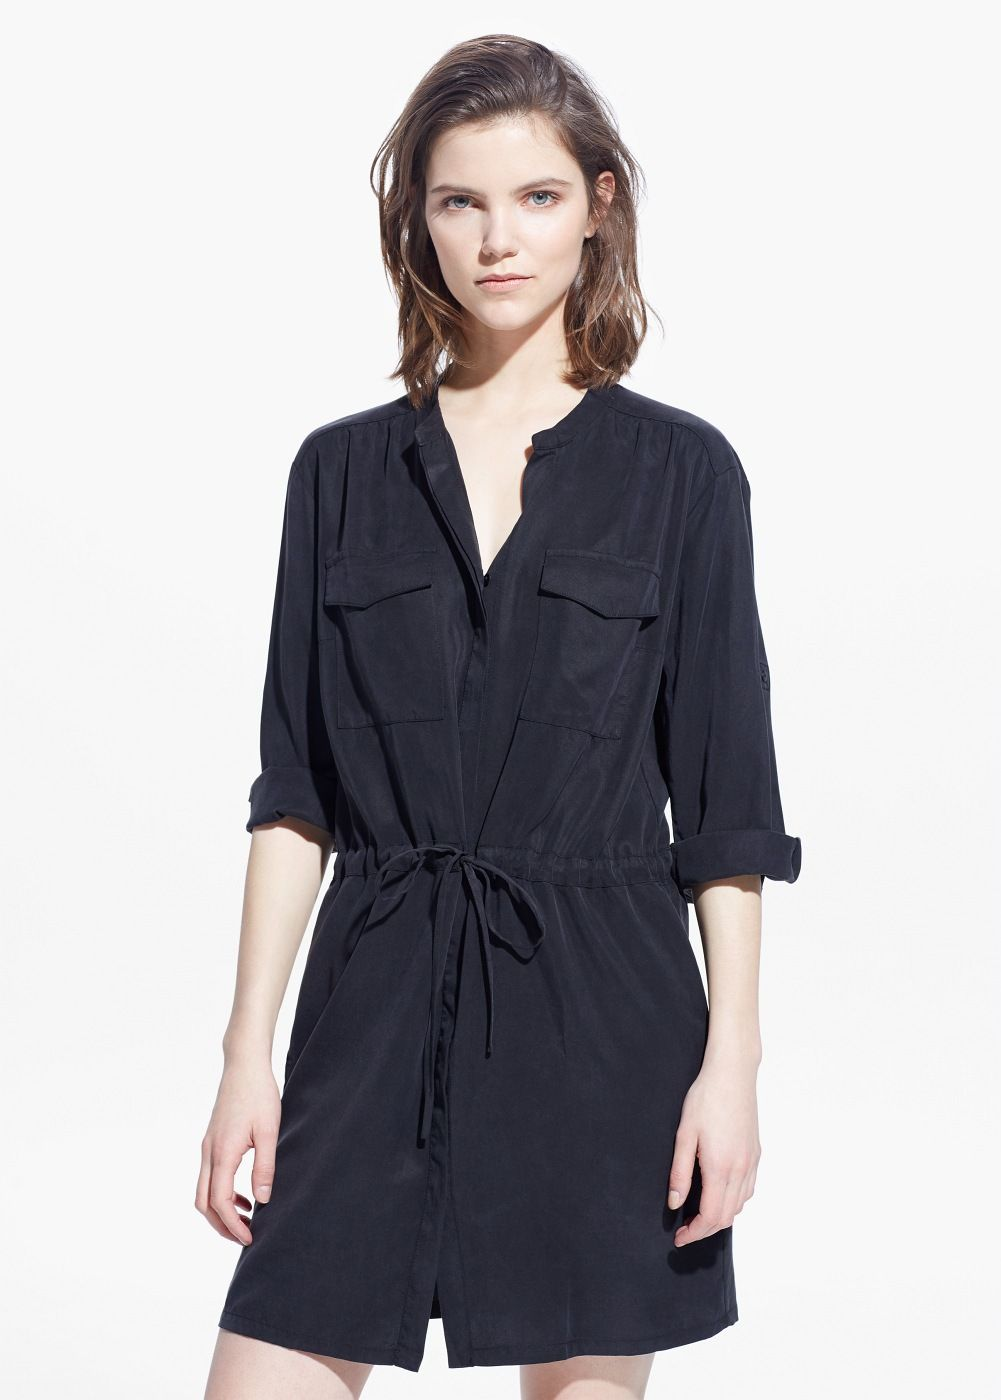 Soft shirt dress - Woman   Fashion   Pinterest   Dresses, Shirt ... 4ec6181ec44